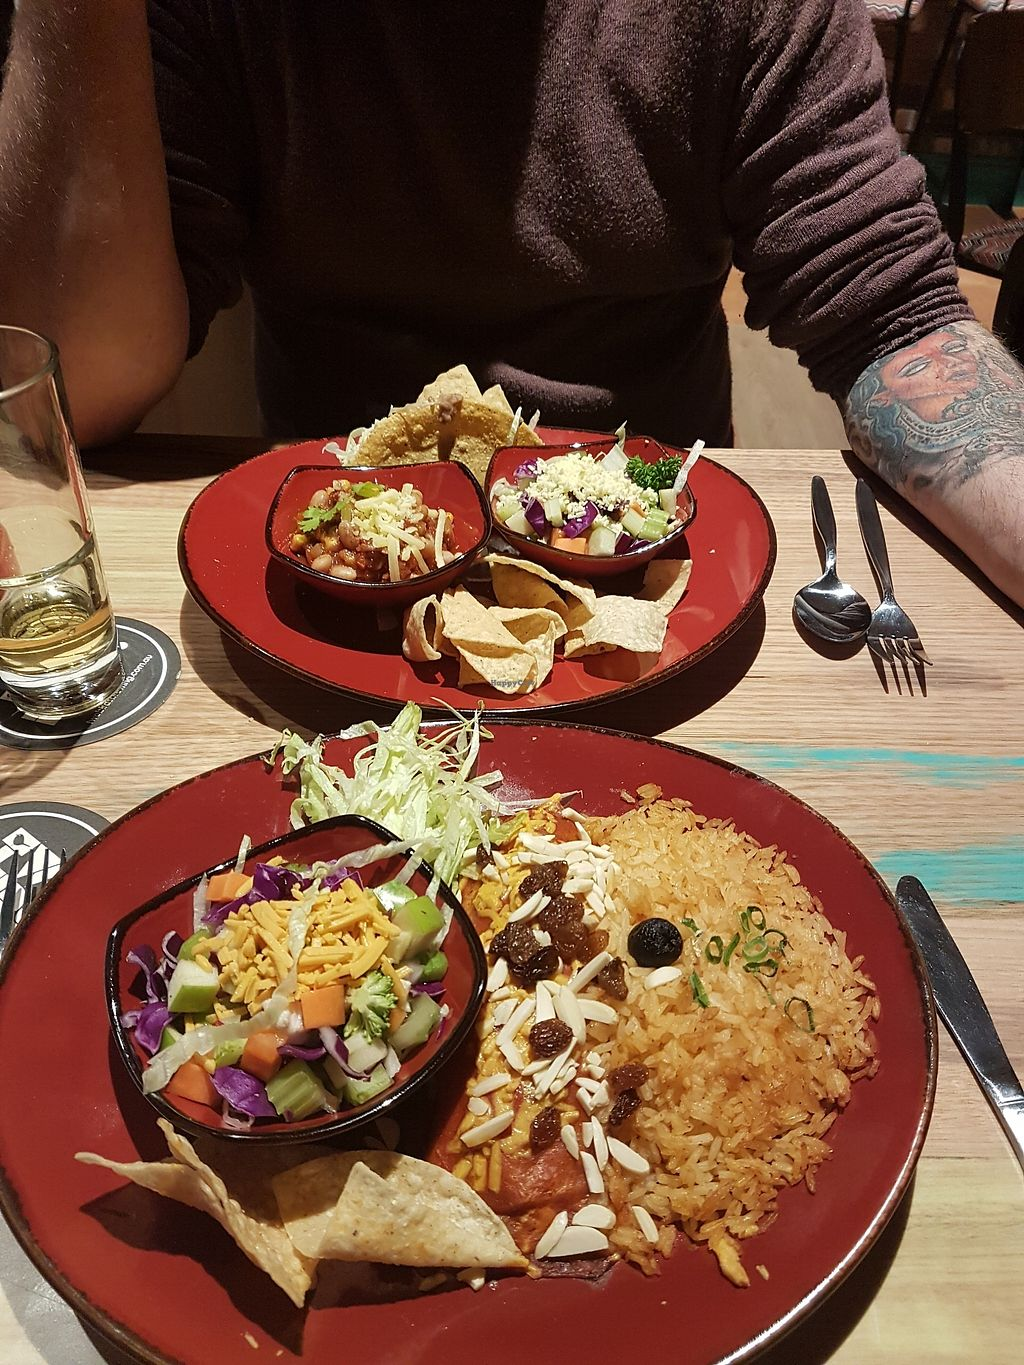 """Photo of Montezuma's  by <a href=""""/members/profile/ChristineOrdner"""">ChristineOrdner</a> <br/>Vegan picadillo enchiladas served with salad and rice <br/> October 6, 2017  - <a href='/contact/abuse/image/102415/312484'>Report</a>"""